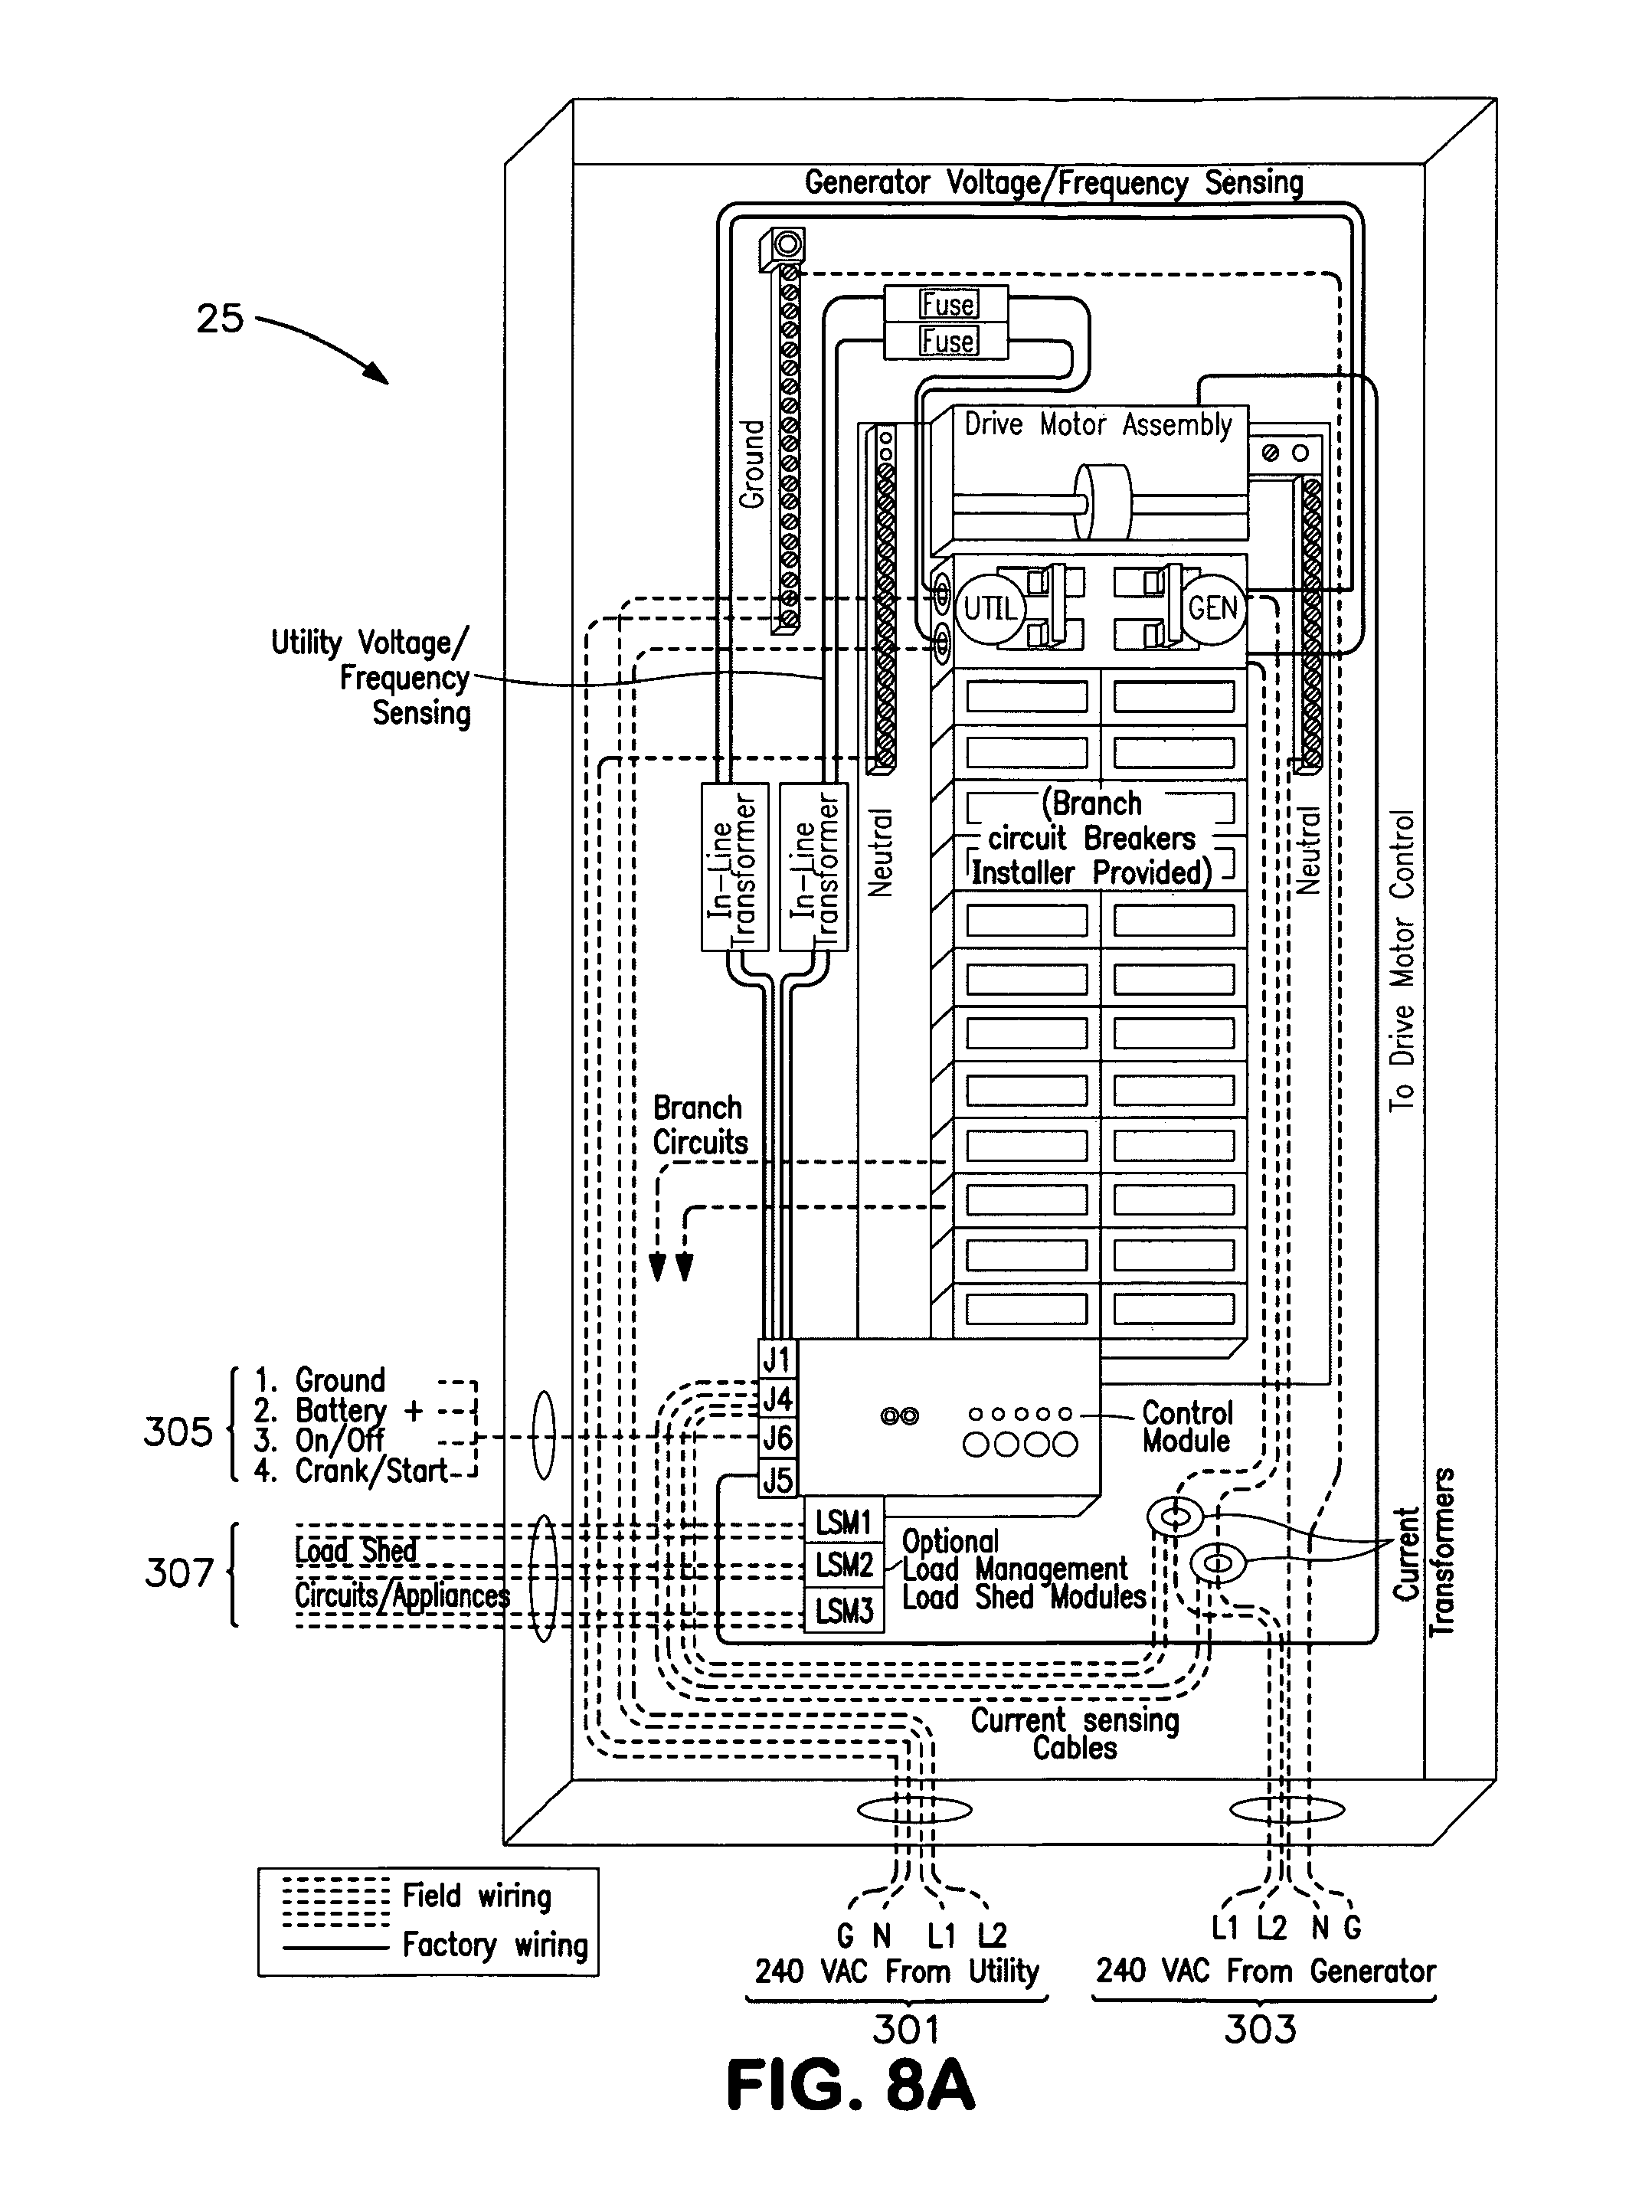 patent us20120242145 - automatic transfer switch